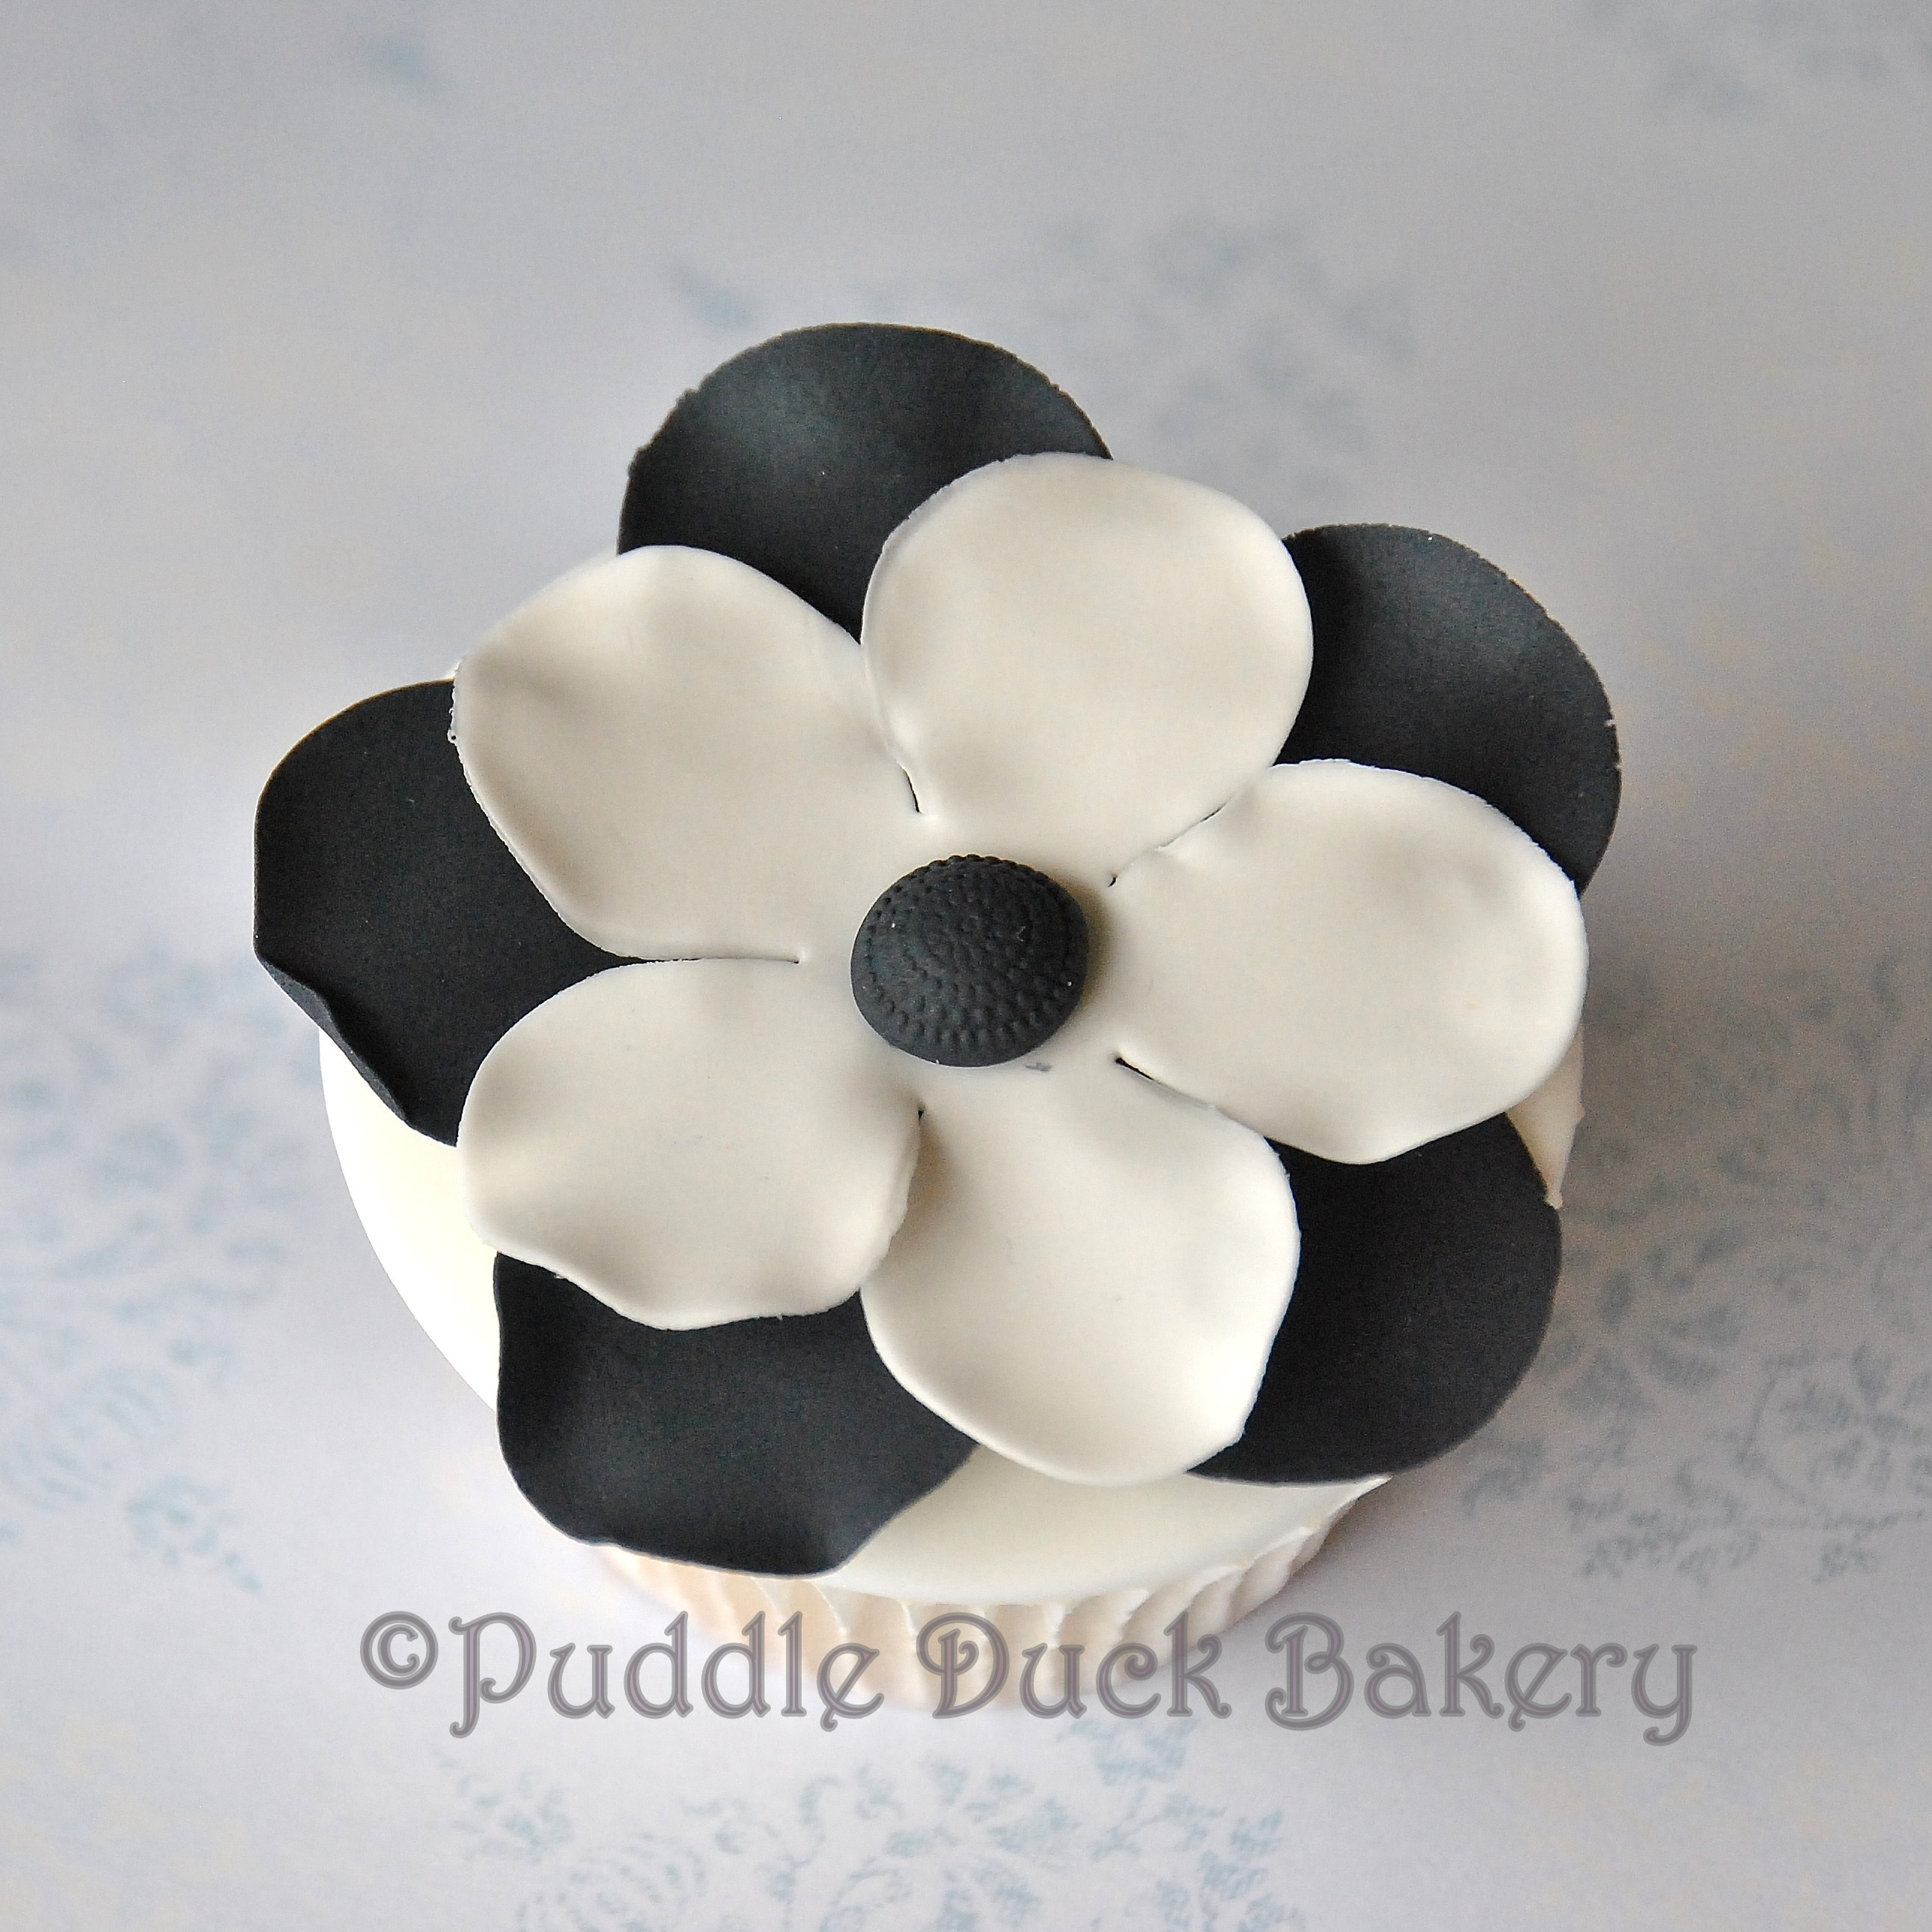 A black and white flower on a cupcake